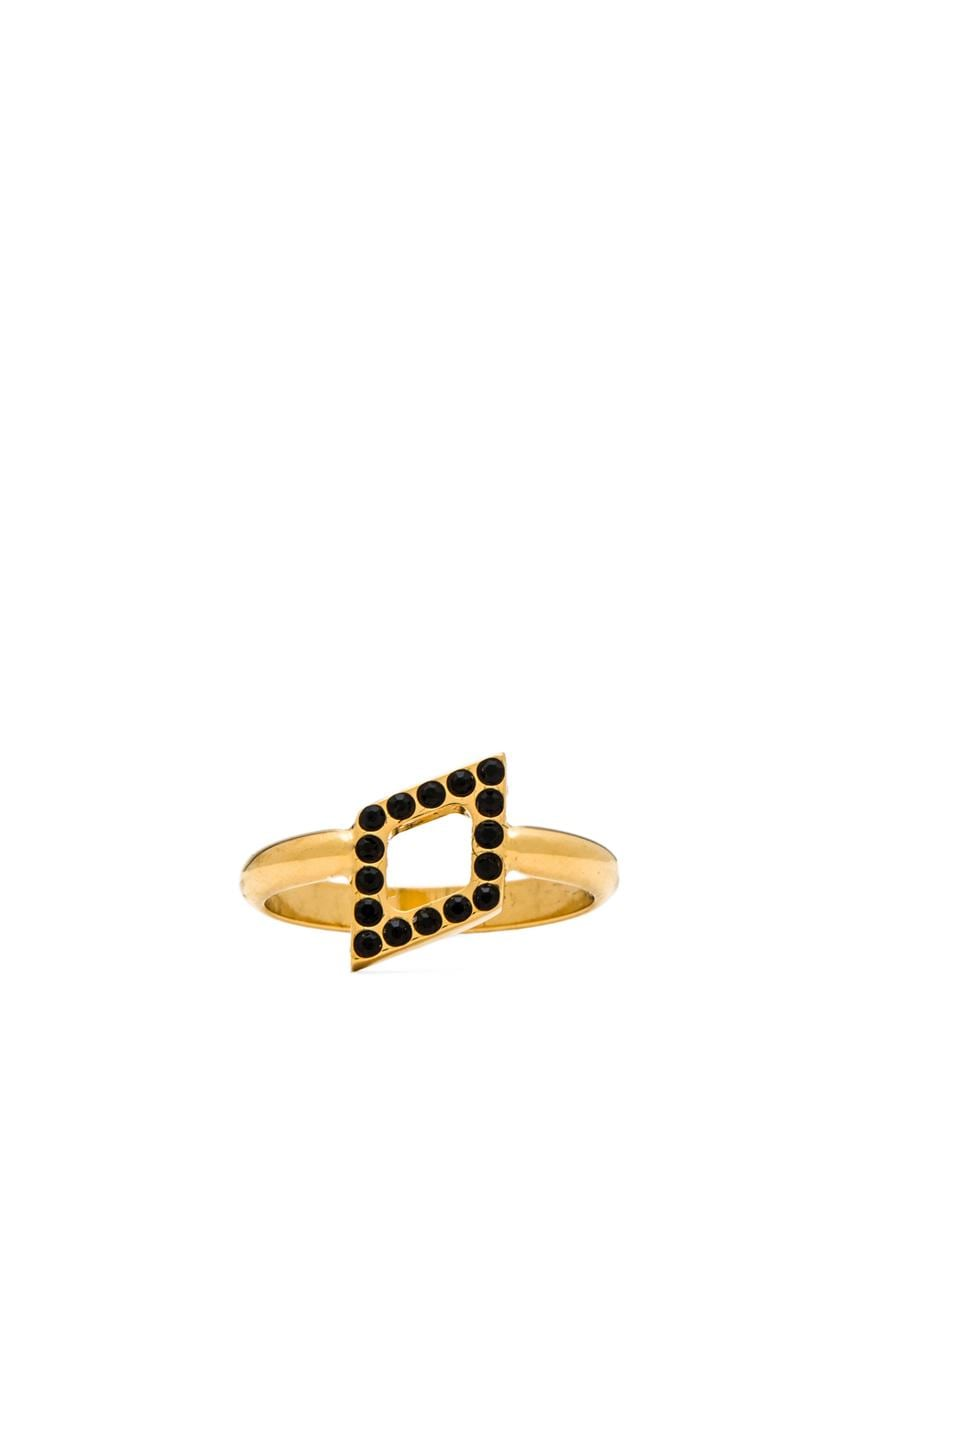 Vita Fede Ultra Mini Rombo Ring in Gold/Black